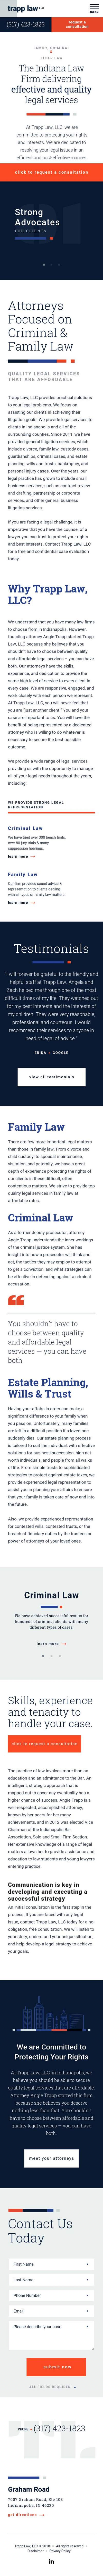 Trapp Law, LLC - Indianapolis IN Lawyers